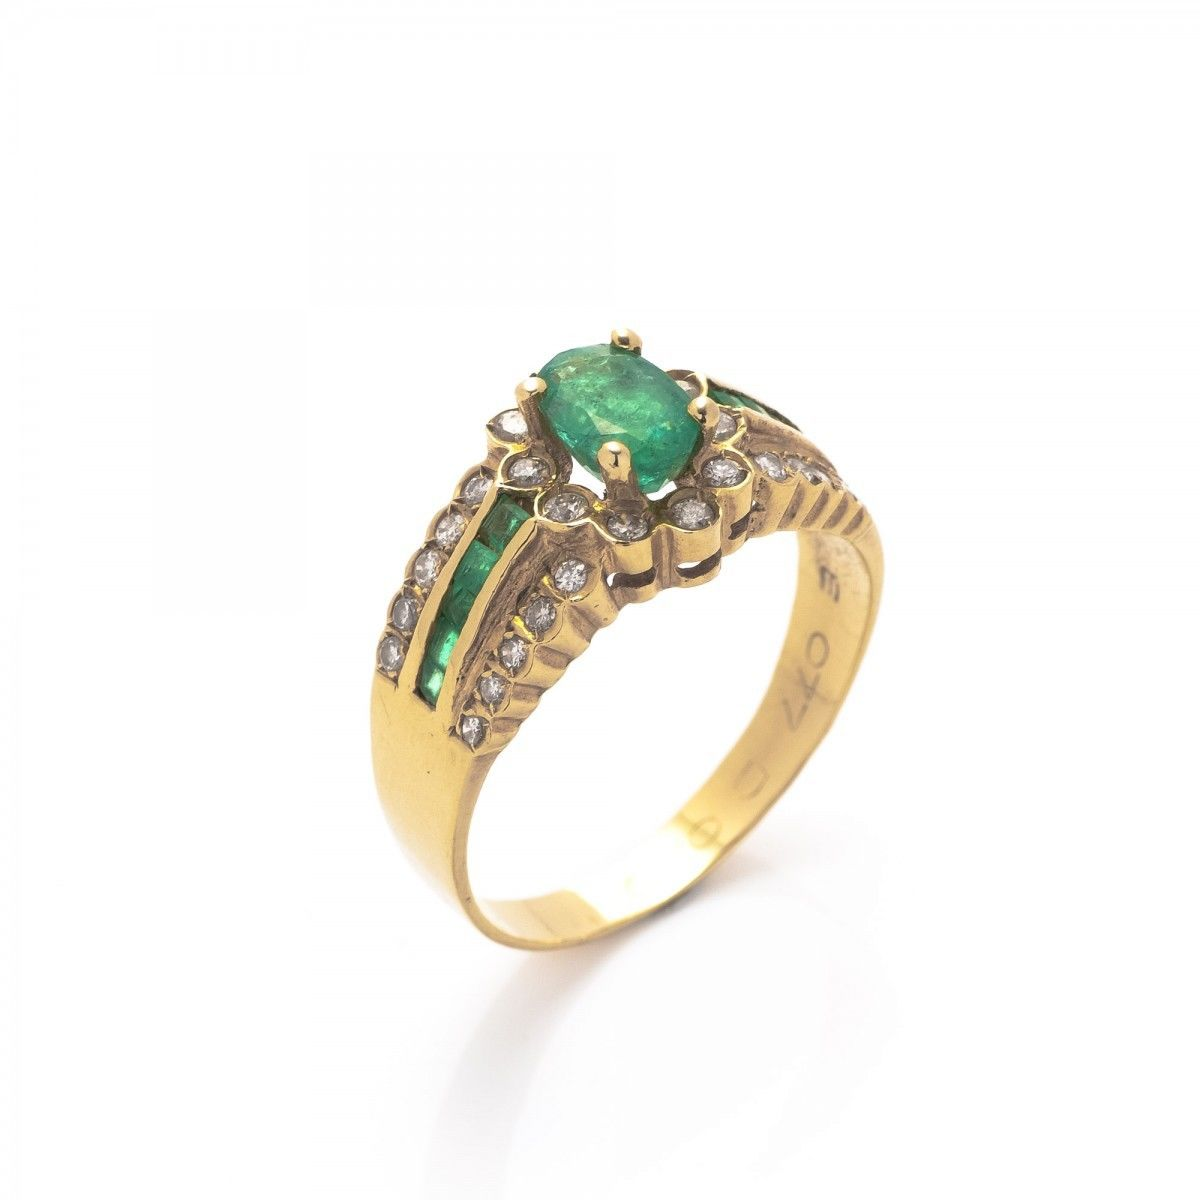 jewelry jewellery vintage toronto ring estate diamond rings and emerald antique